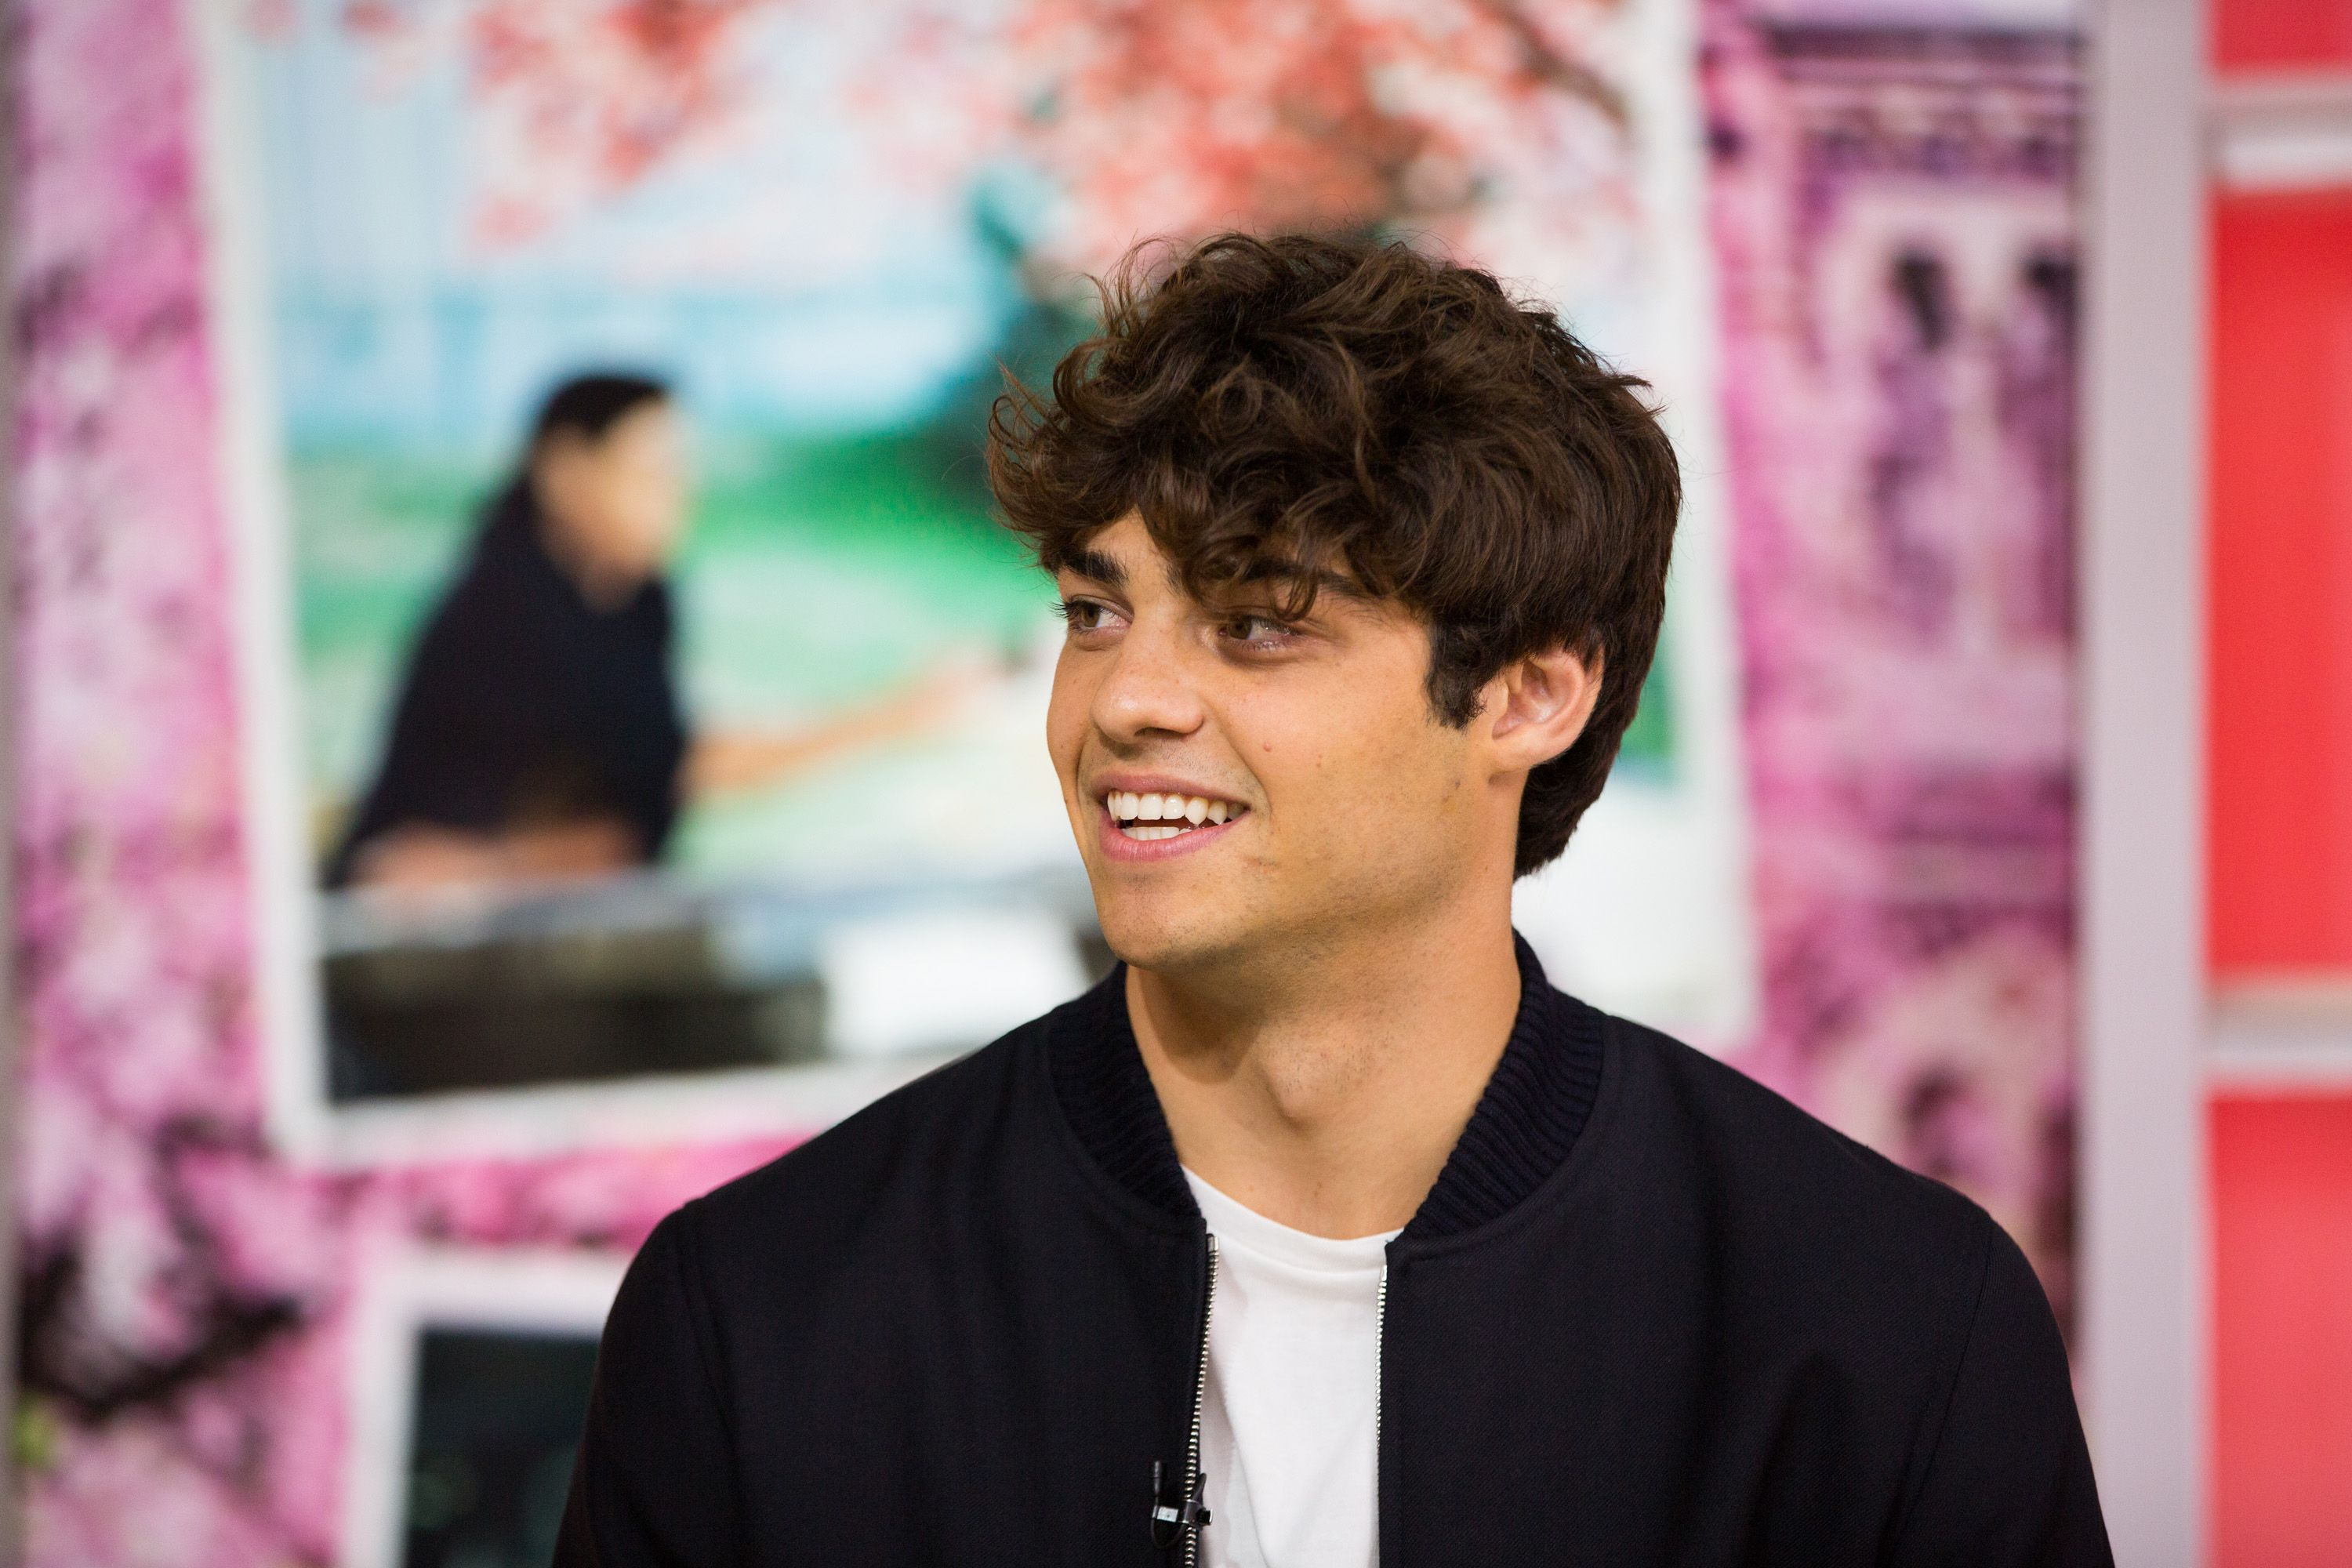 Noah Centineo's Next Role Is a Superhero...With Bangs